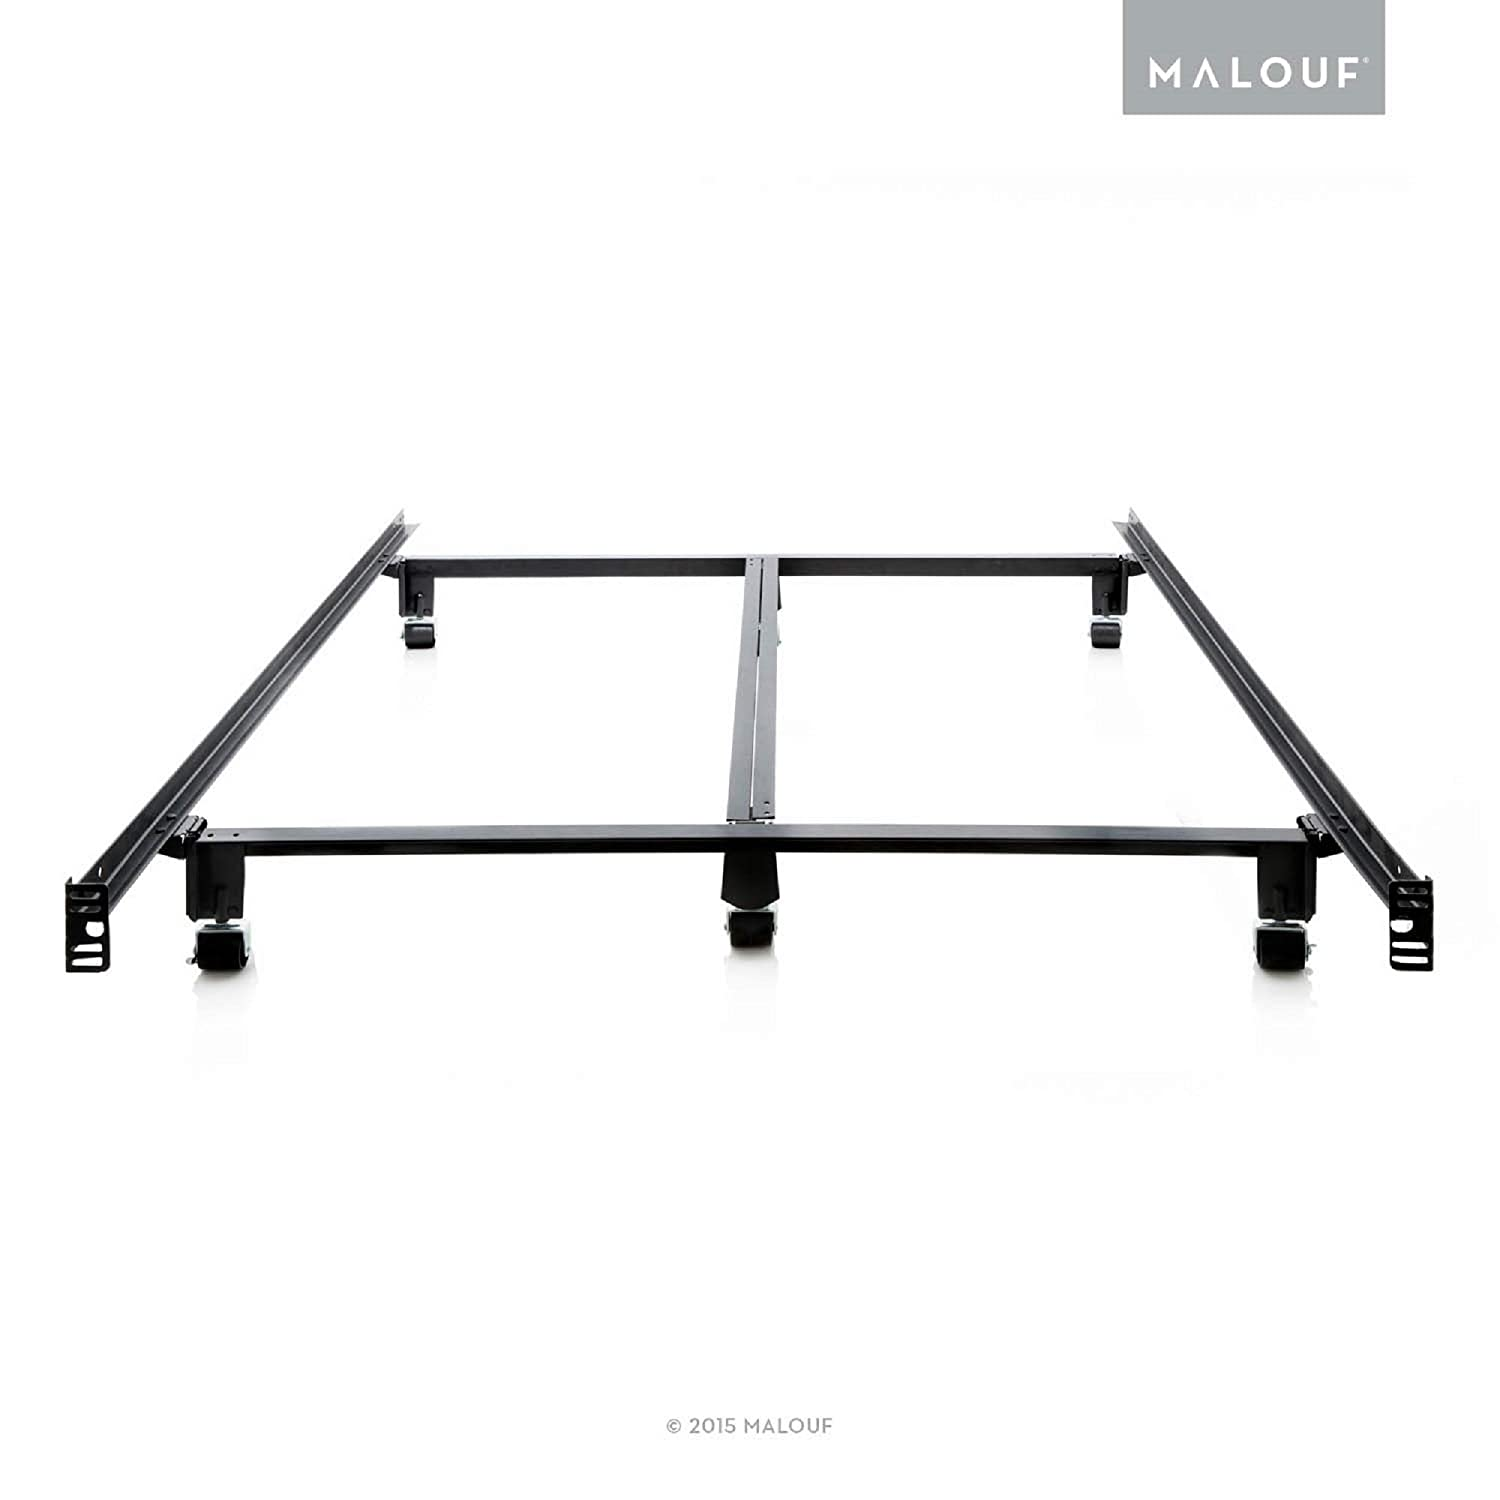 MALOUF Structures STEELOCK Super Duty Steel Wedge Lock Metal Bed Frame – Cal King